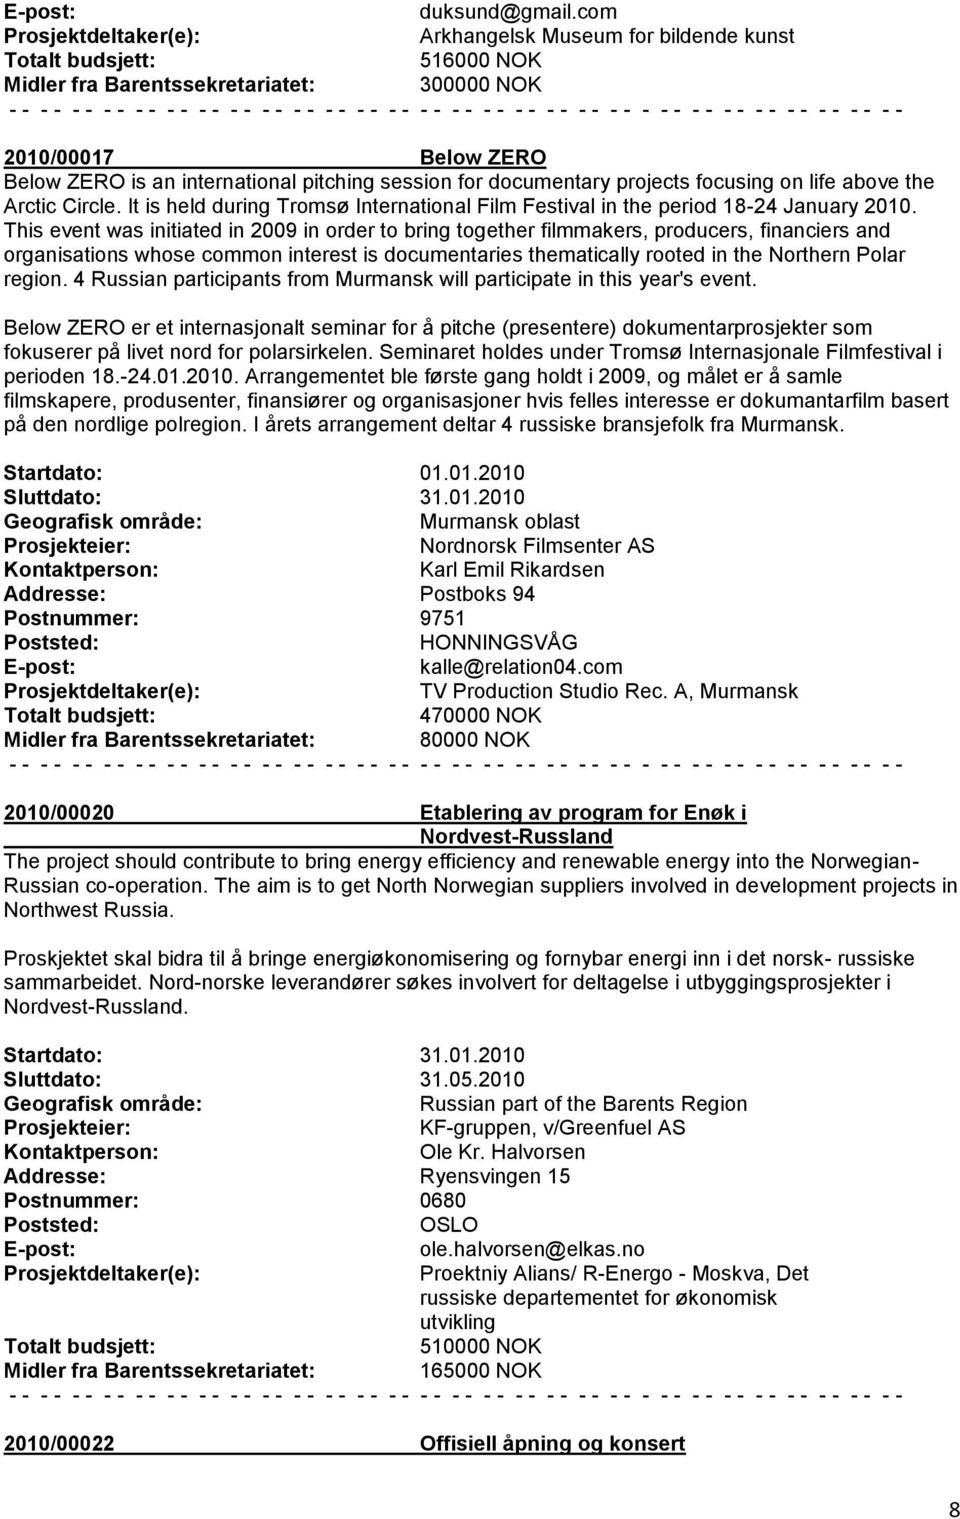 focusing on life above the Arctic Circle. It is held during Tromsø International Film Festival in the period 18-24 January 2010.